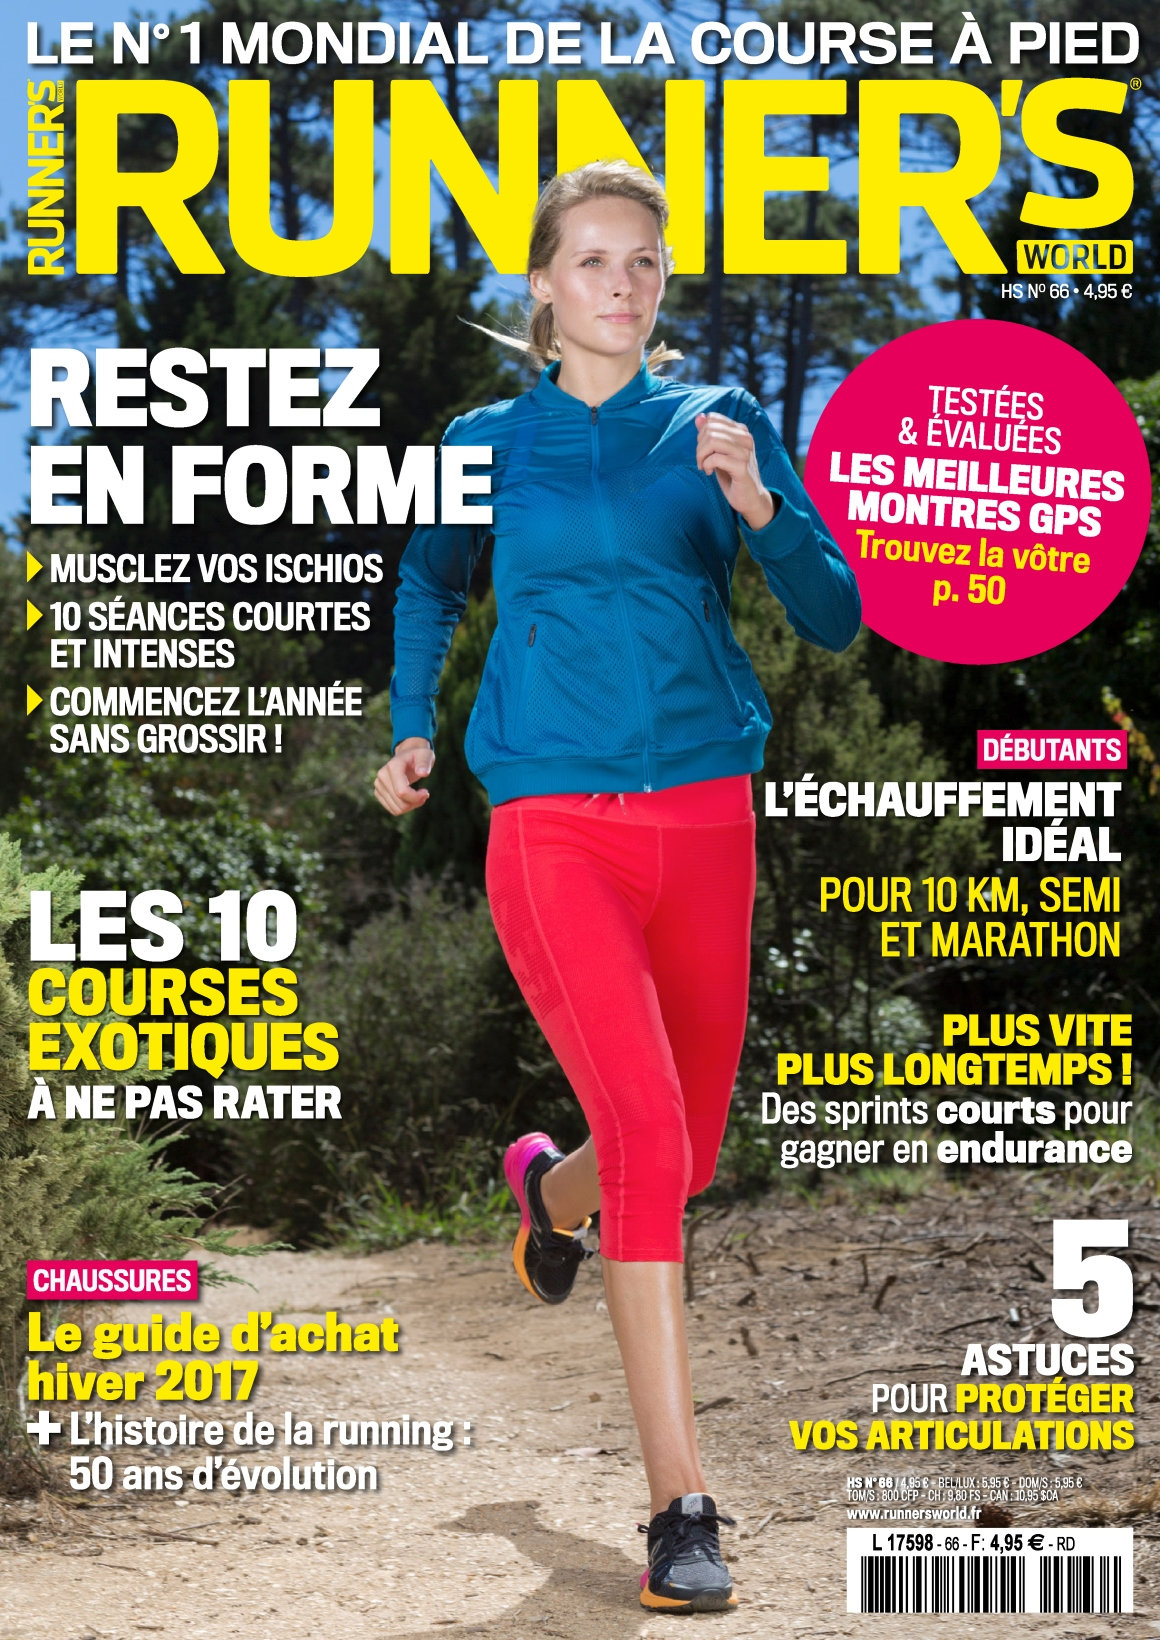 Runner''s World N°66 - Janvier 2017